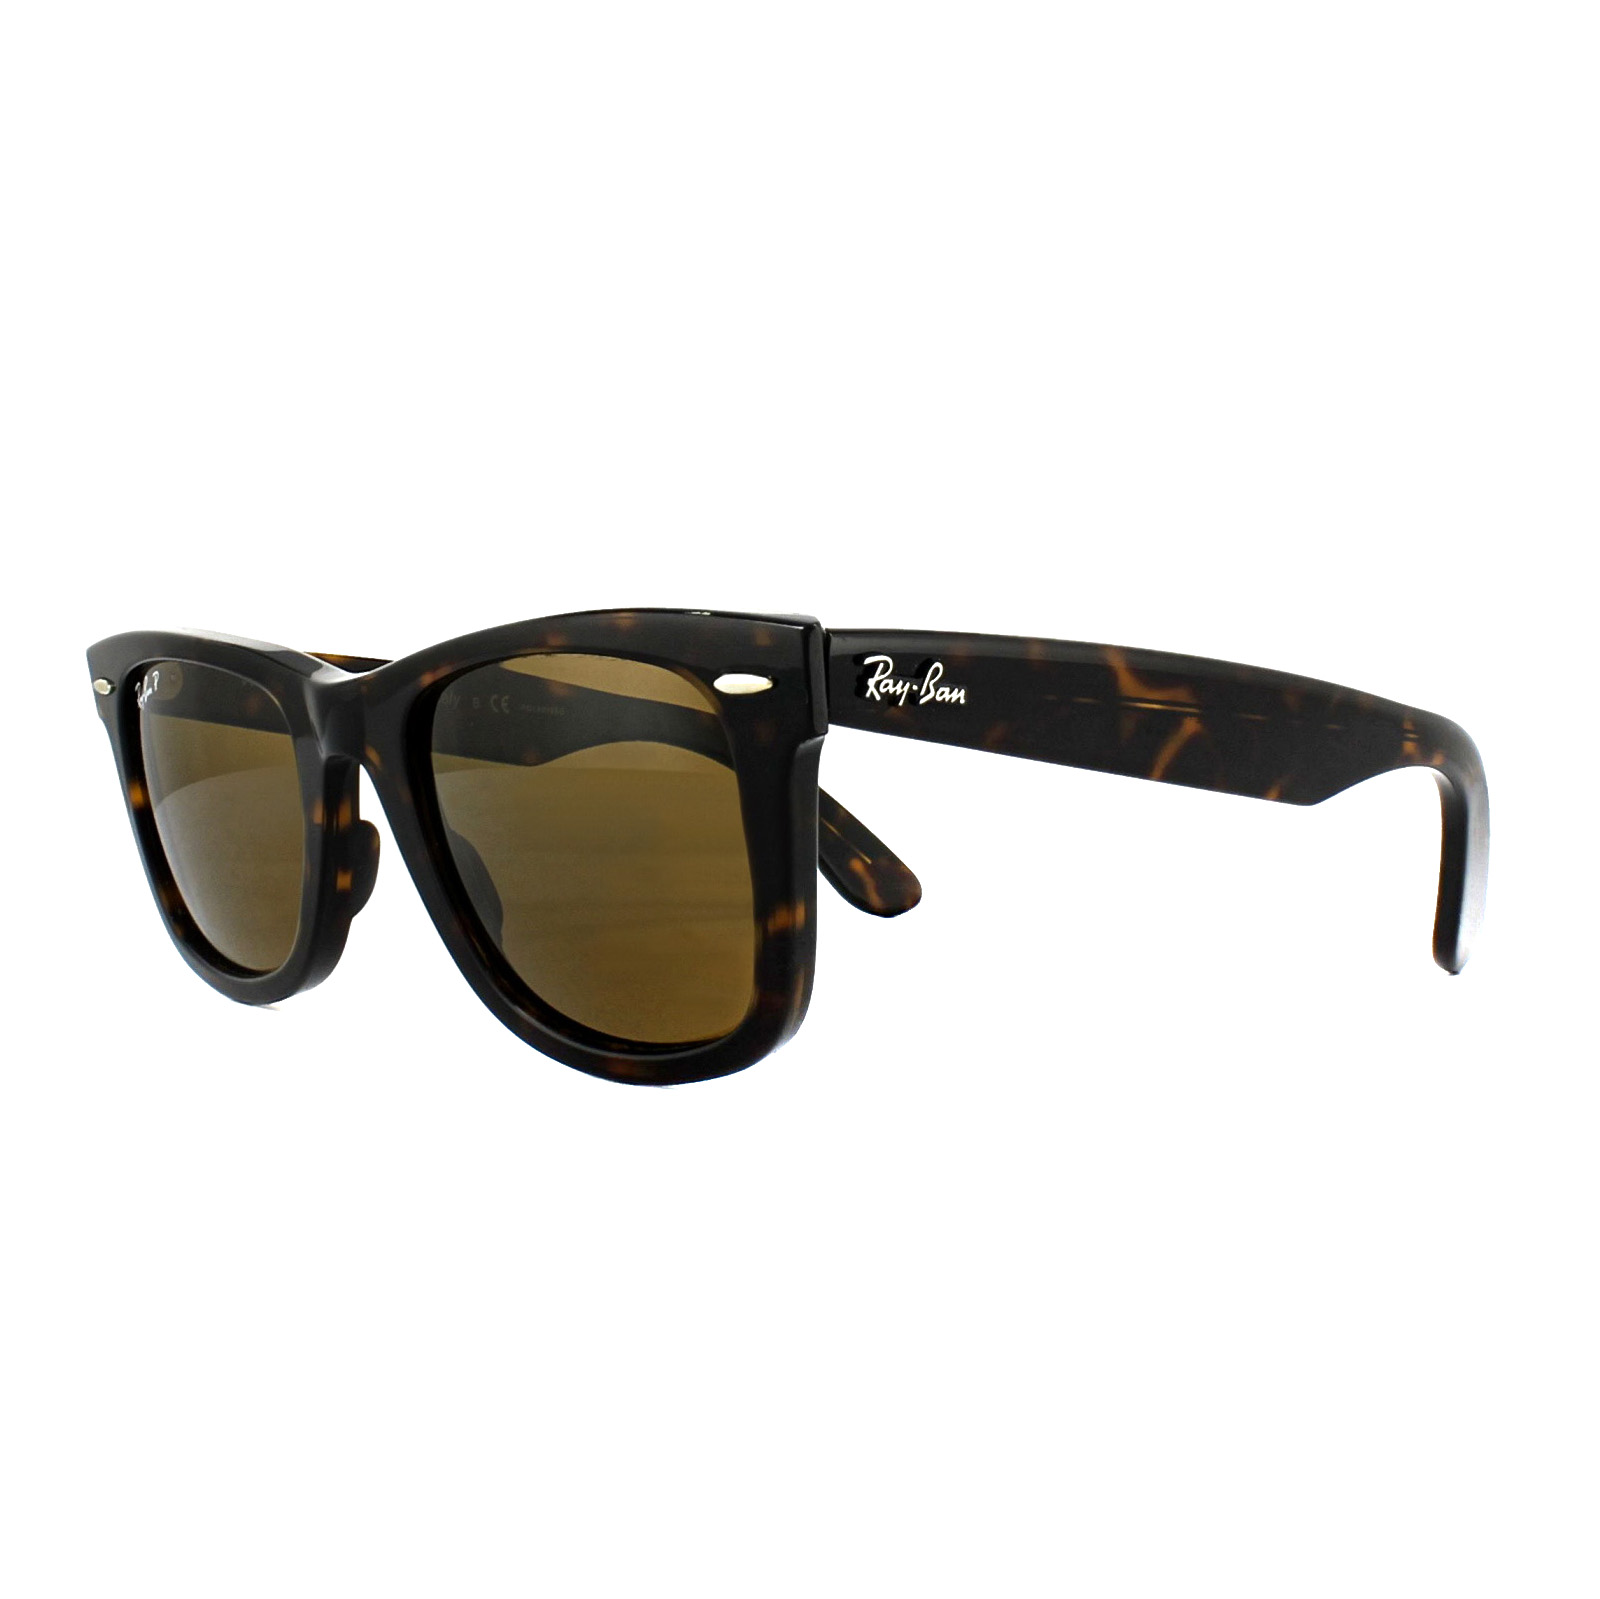 6e5fe583fe Sentinel Ray-Ban Sunglasses Wayfarer 2140 Tortoise Brown Polarized 902 57  Medium 50mm